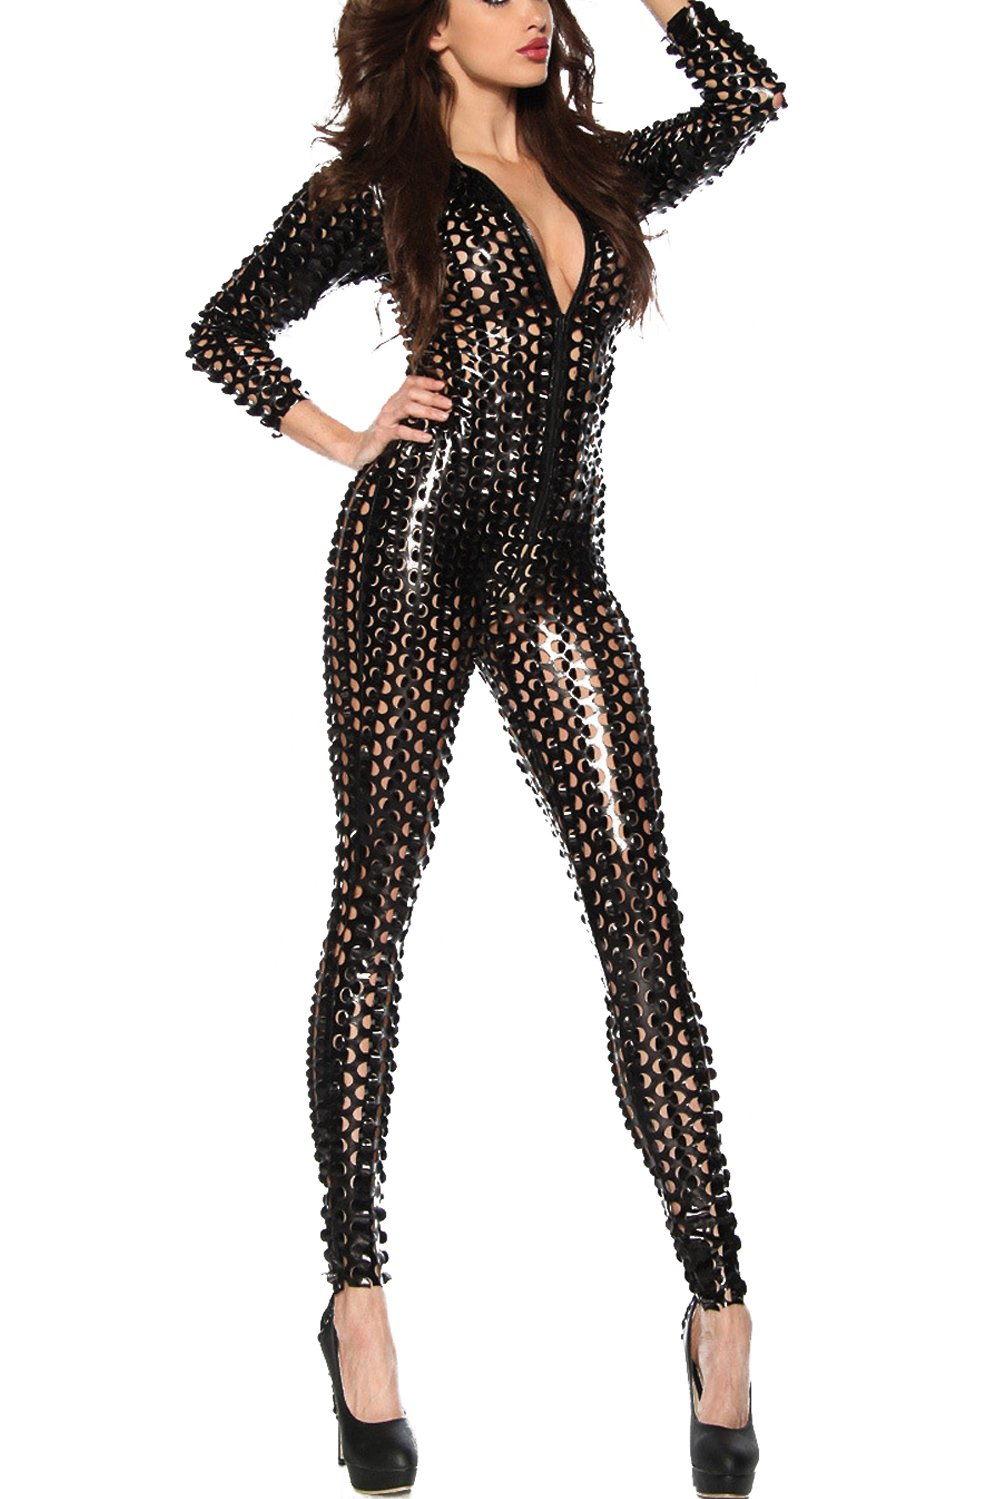 LHS Charmer One-Piece Scaly Jumpsuit Punk Metallic 3D Hollow Up Catsuit Plus Size Metallic Skinny Stretch Bodysuit